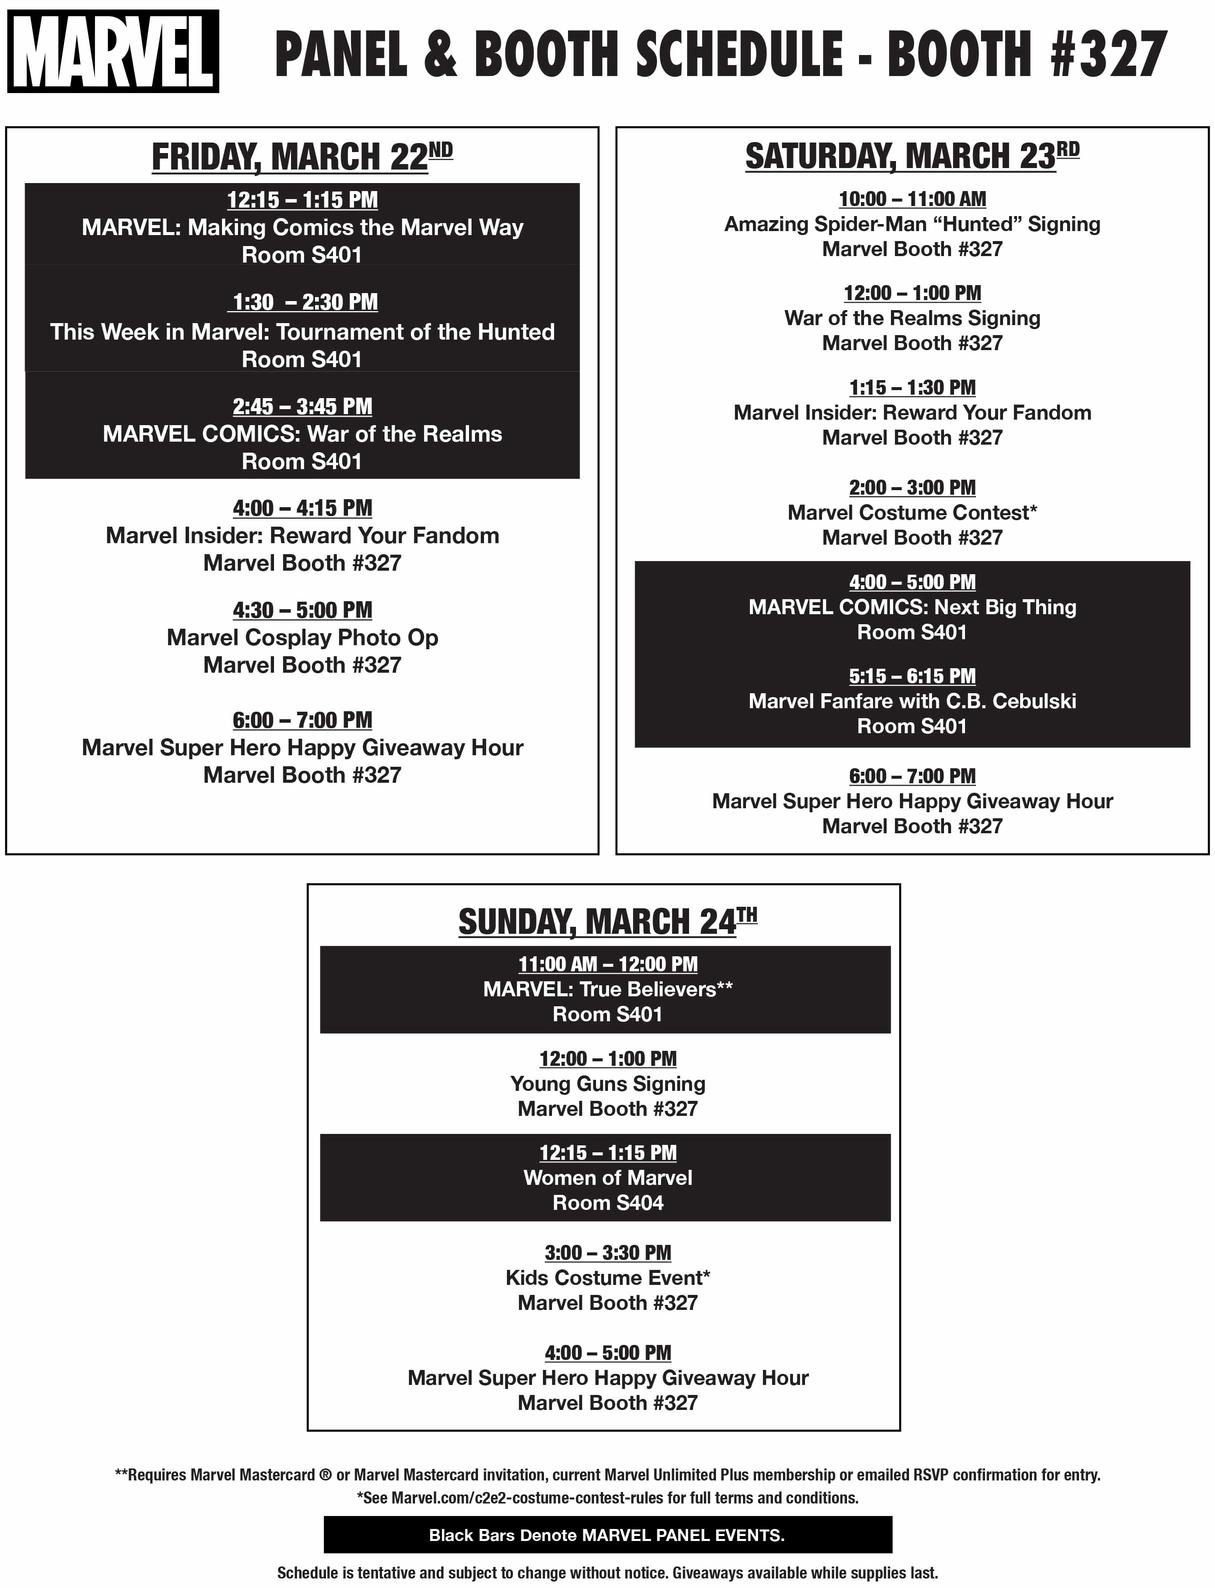 Marvel C2E2 Booth and Panel Schedule